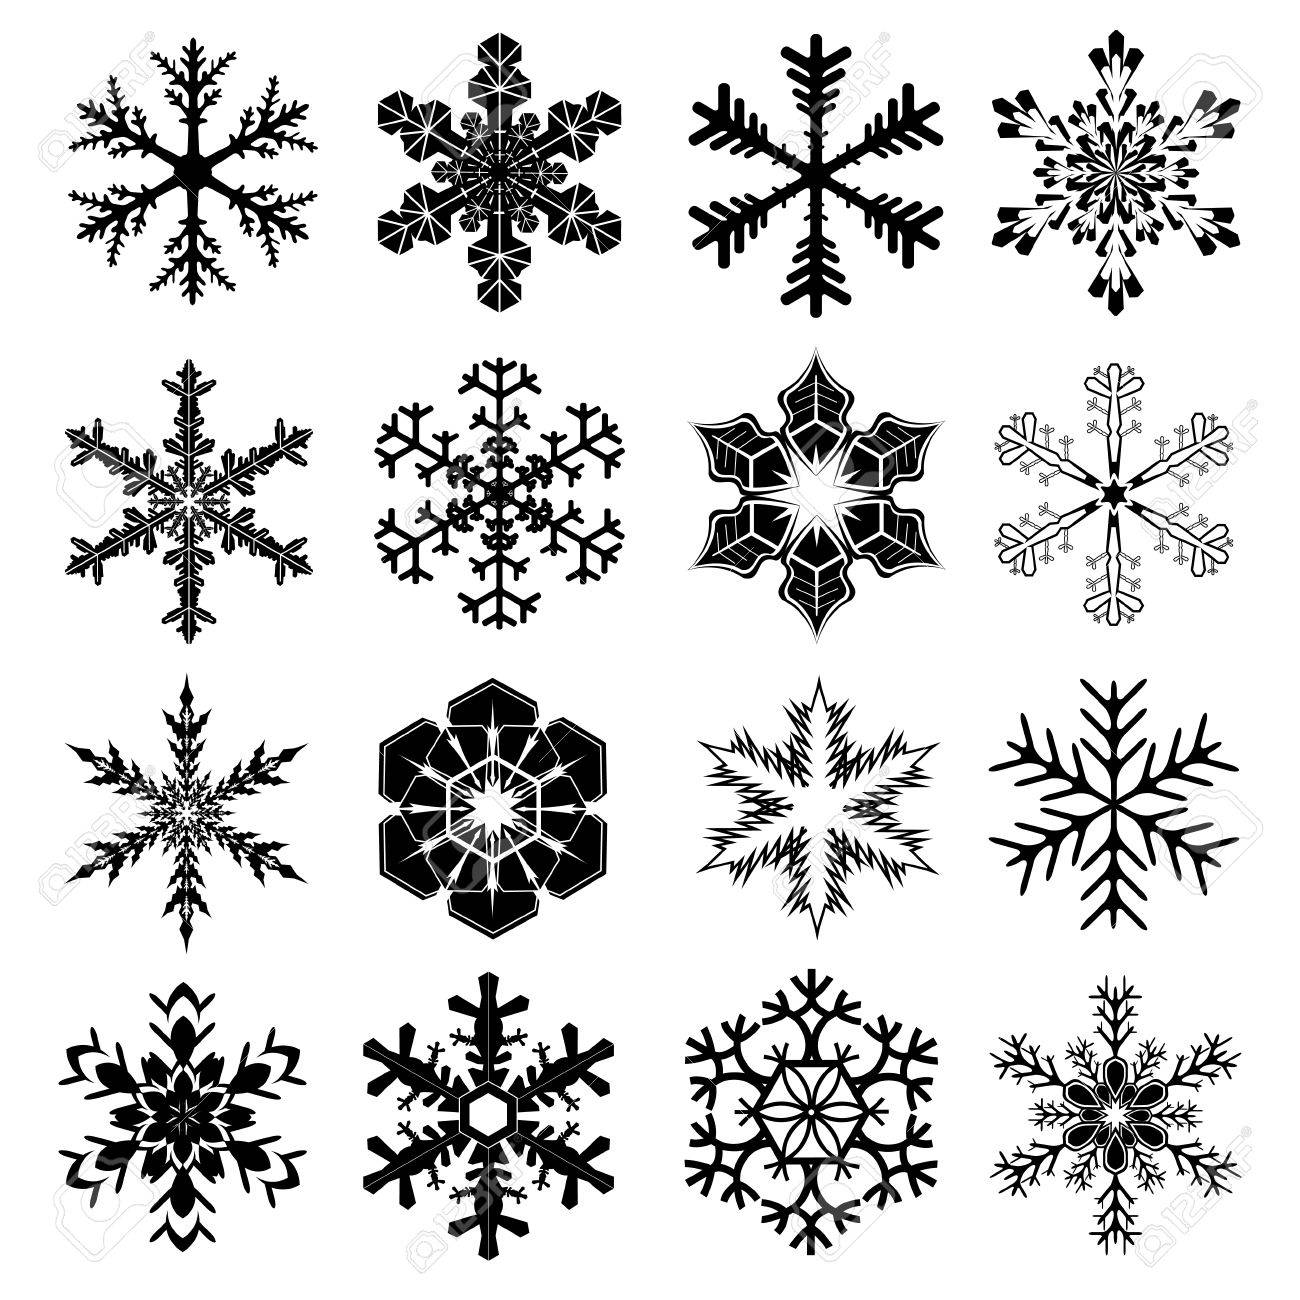 snowflakes set with 16 snow crystals for christmas and winter design in black with white background